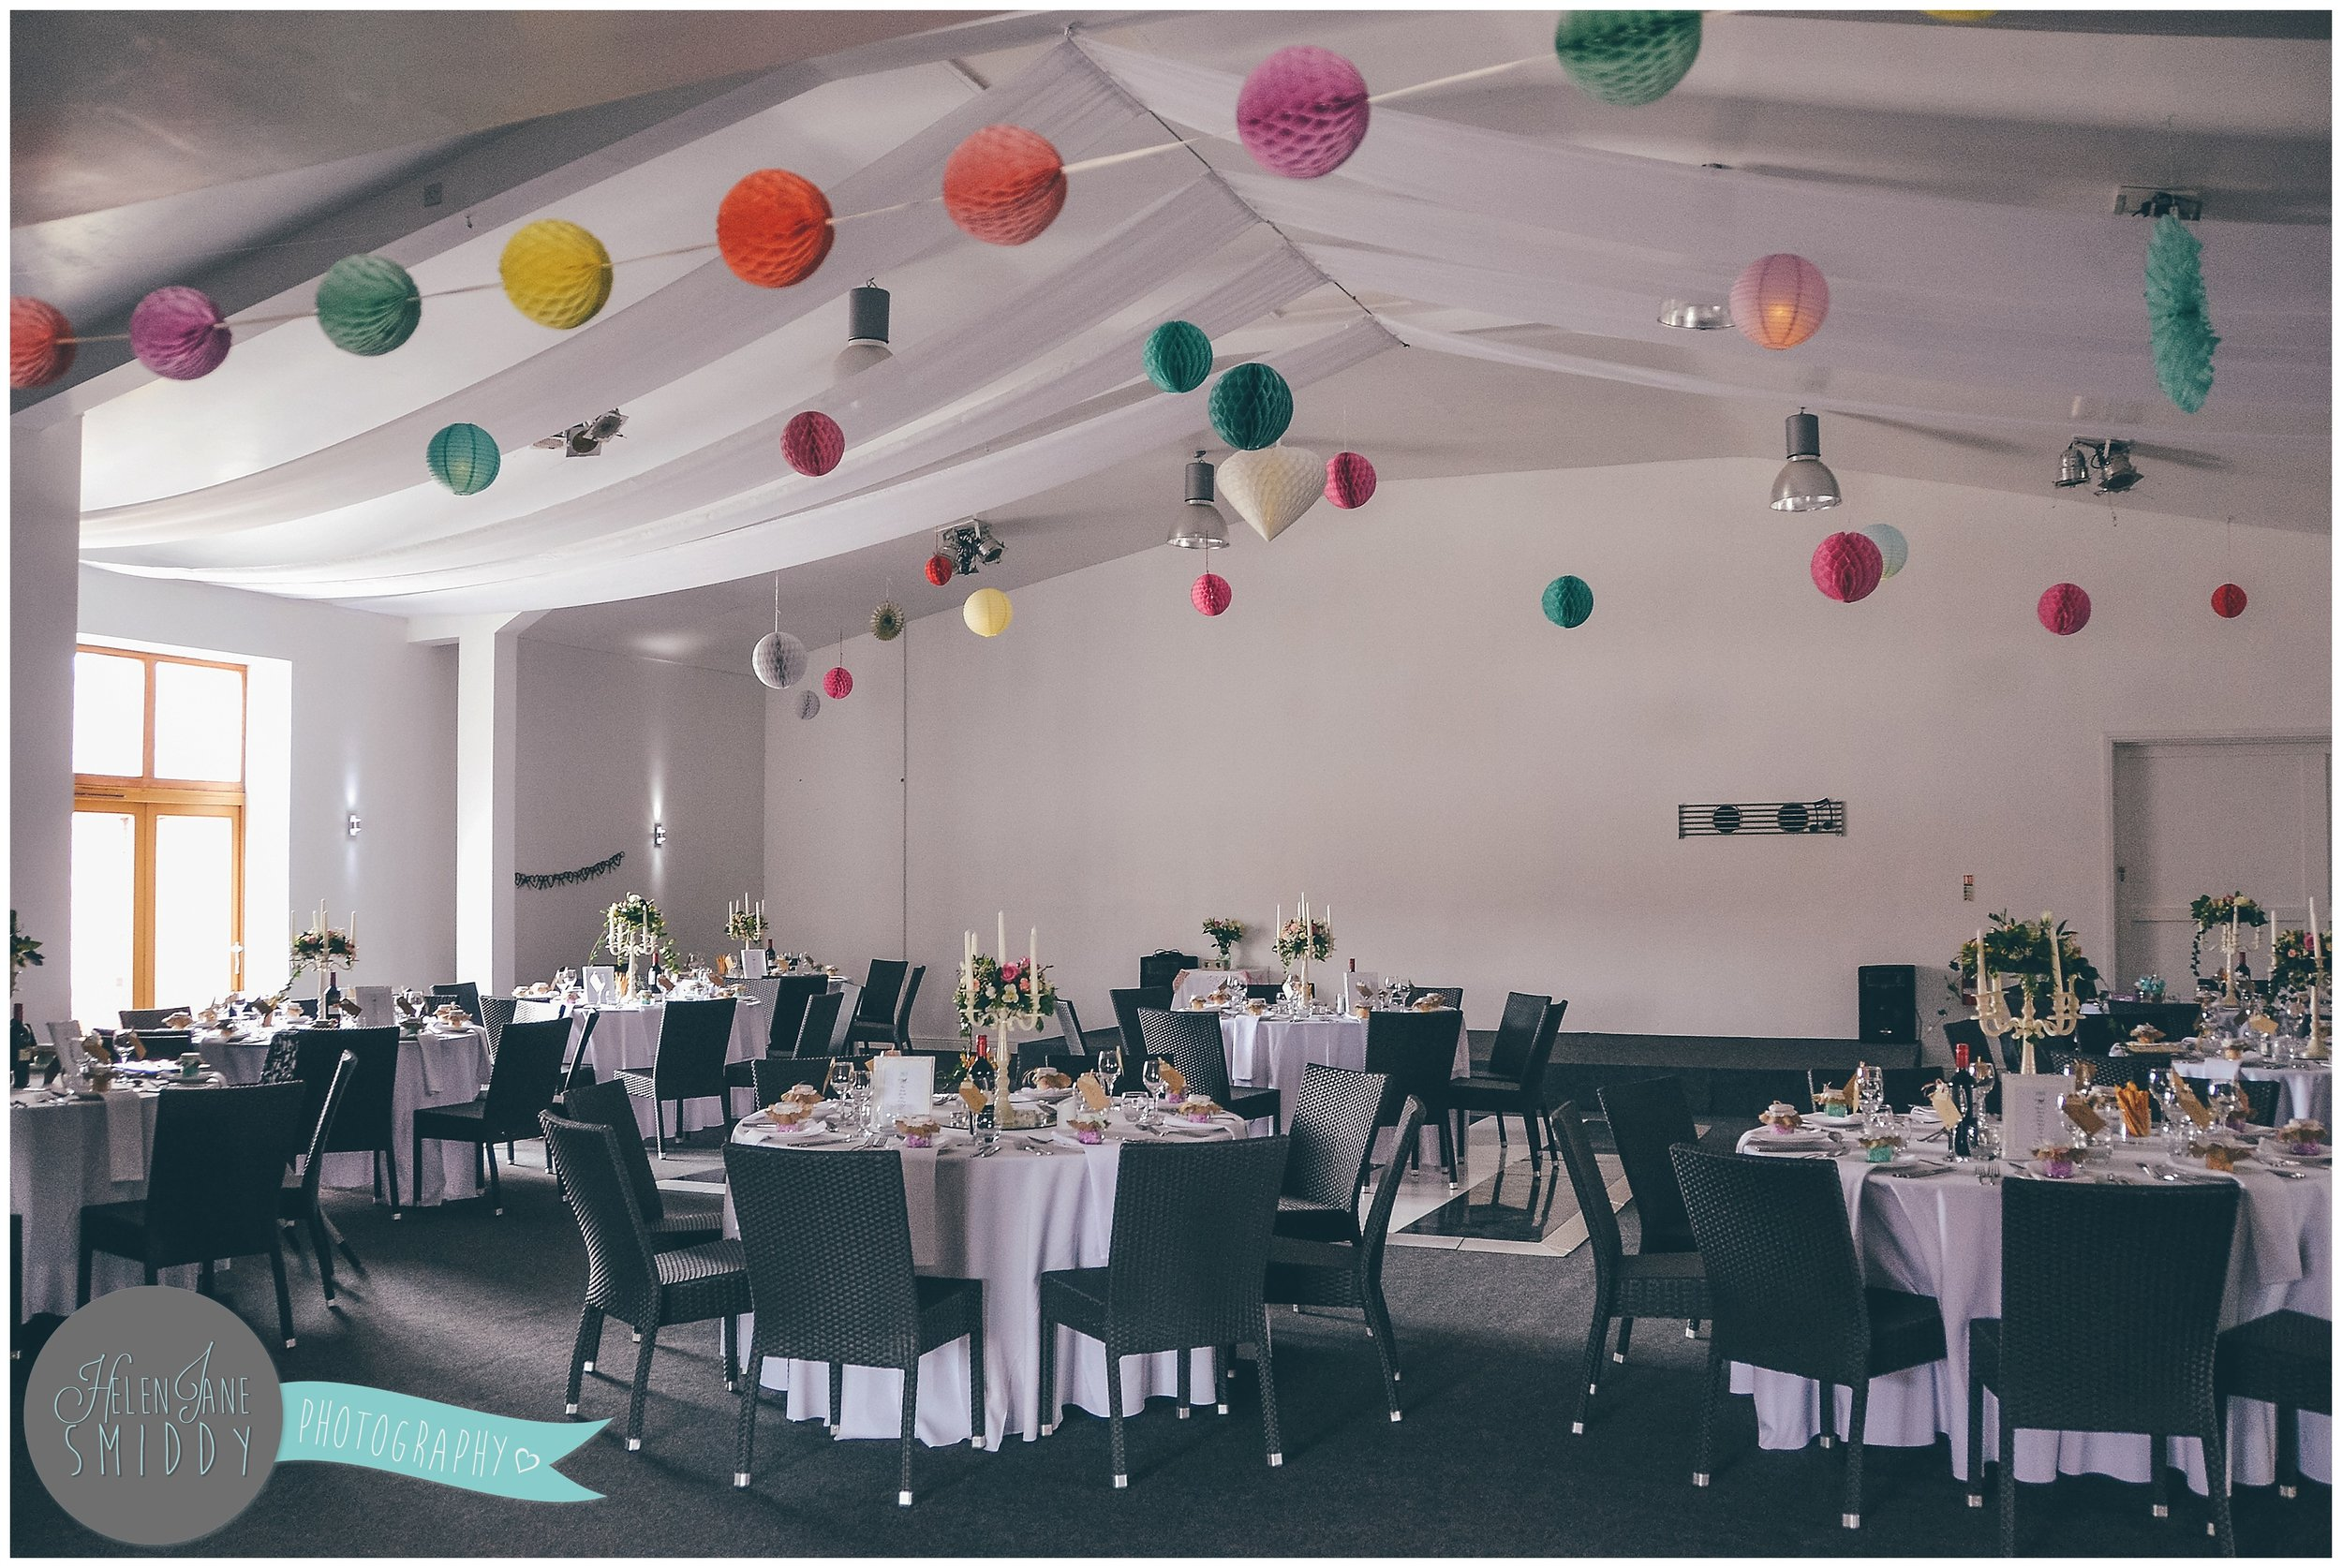 Colourful lanterns make up a beautiful and creative interior of a wedding venue.